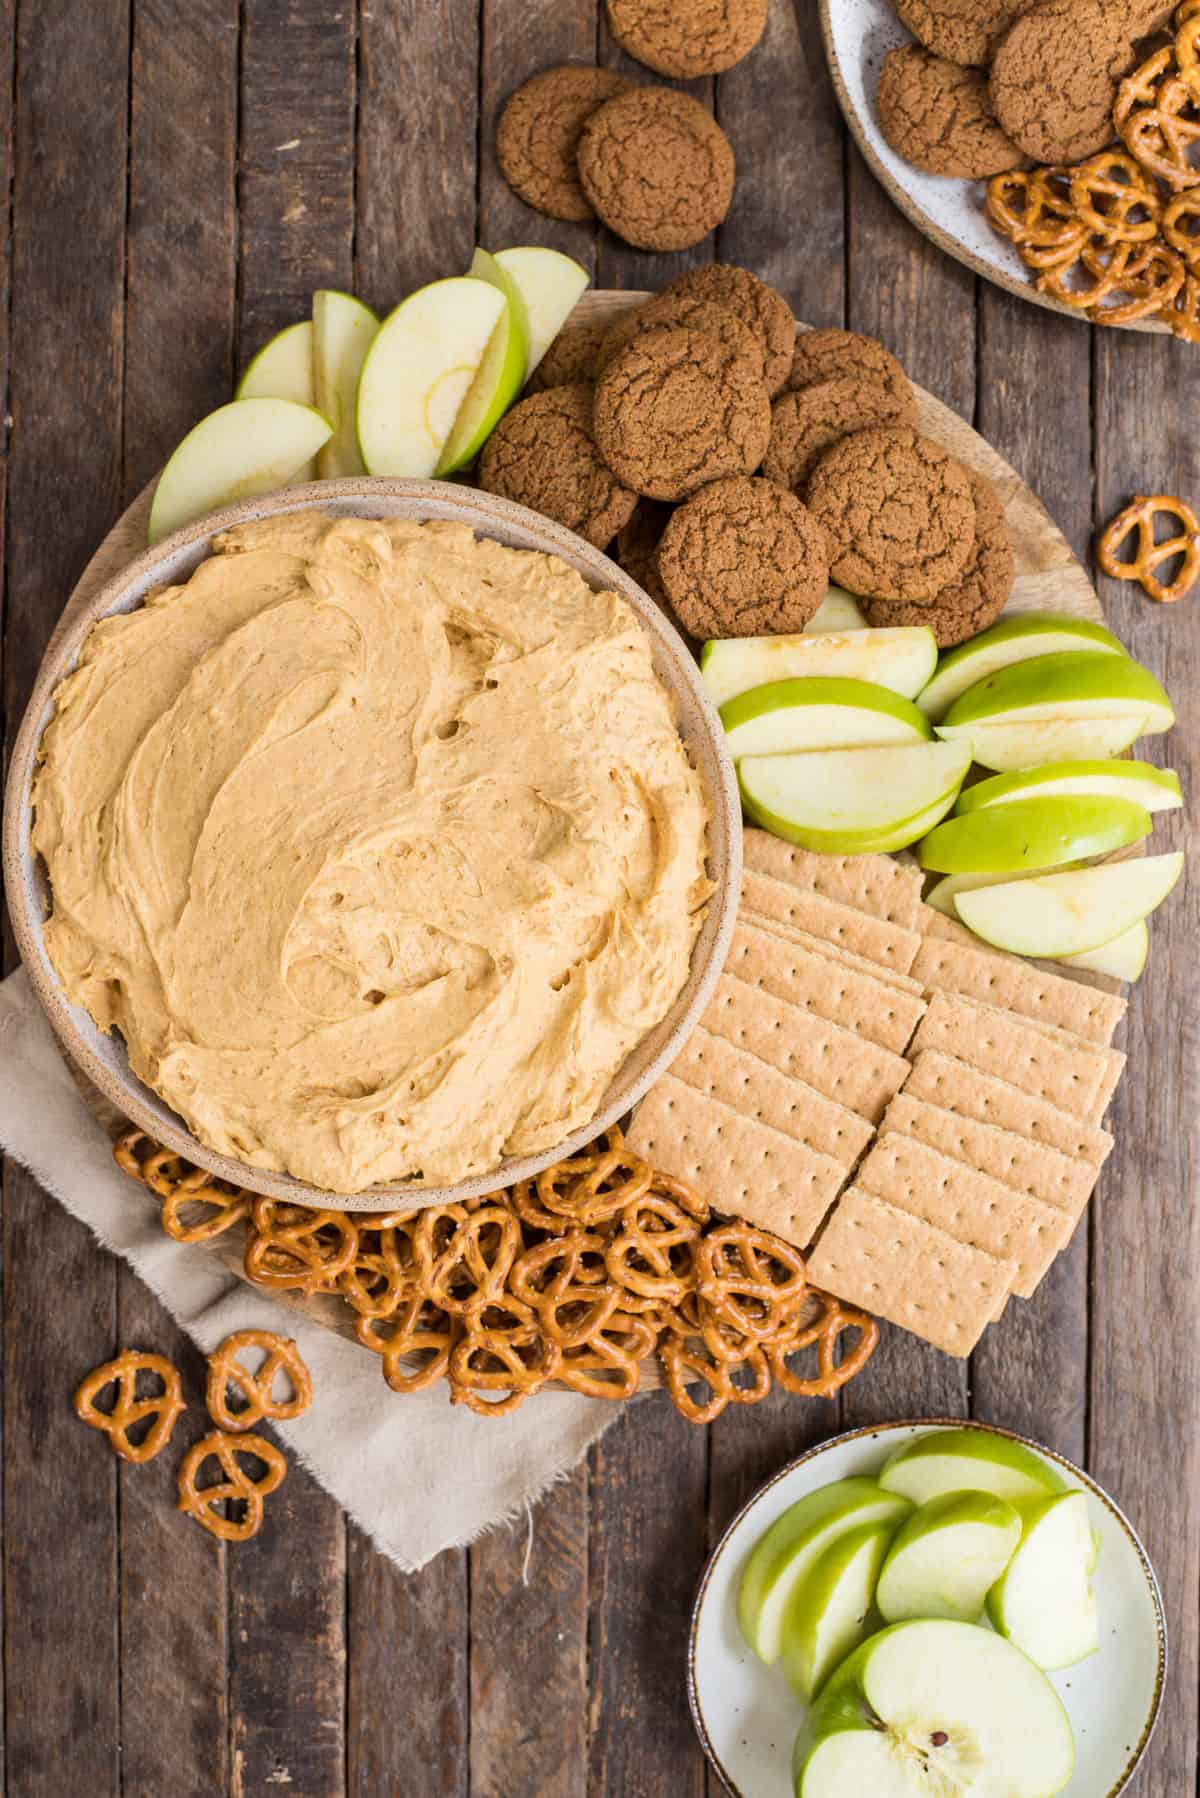 pumpkin dip in a bowl surrounded by piles of pretzels, gingersnaps, graham crackers and green apple slices on wooden background